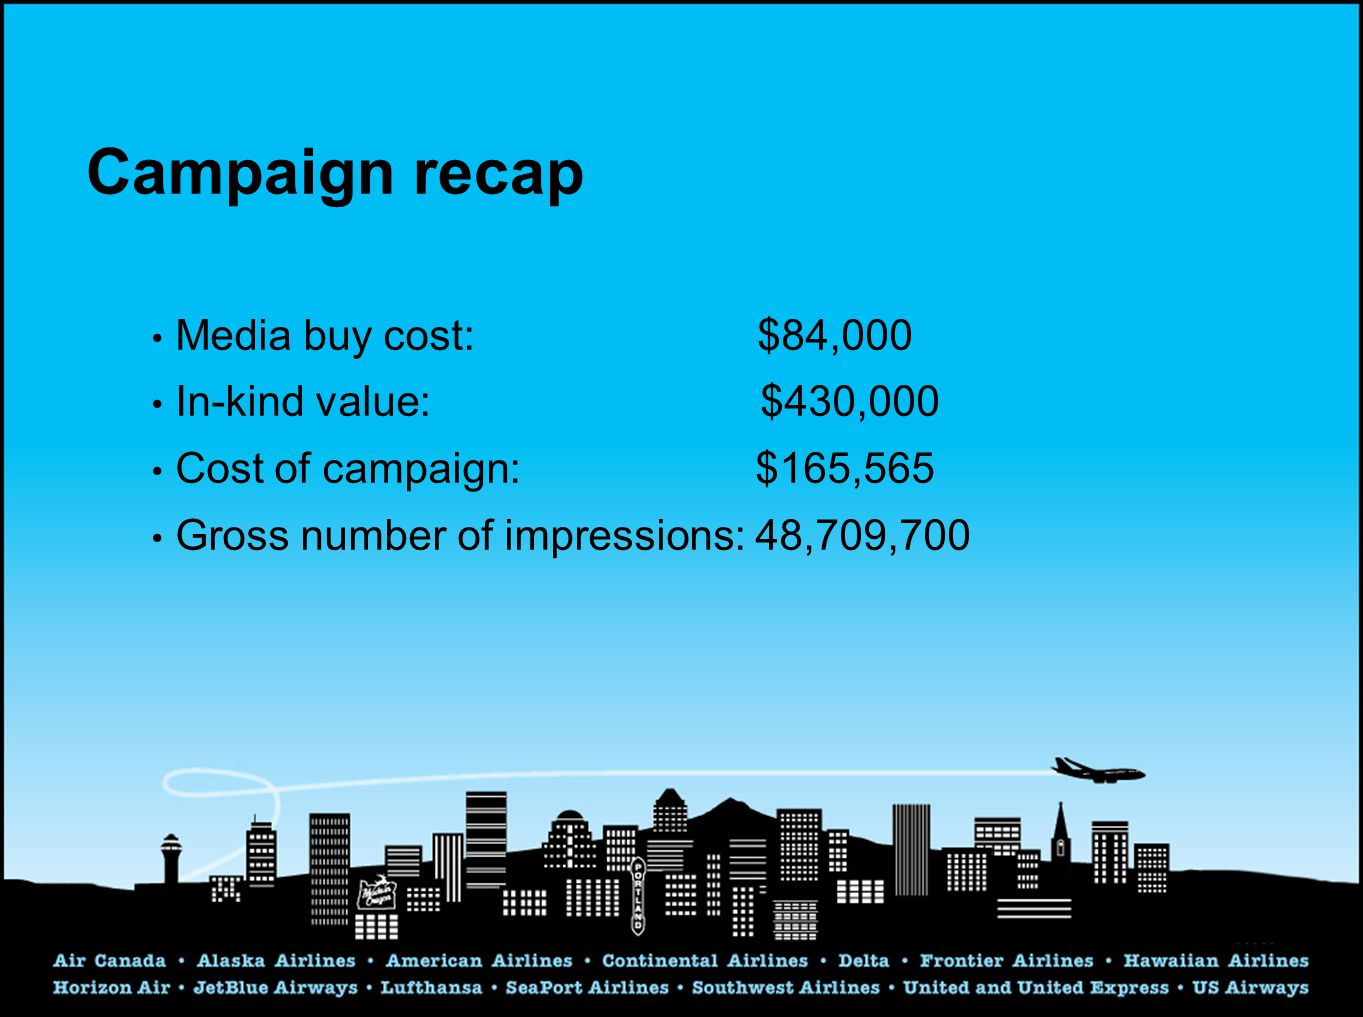 Campaign recap Media buy cost: $84,000 In-kind value: $430,000 Cost of campaign: $165,565 Gross number of impressions: 48,709,700